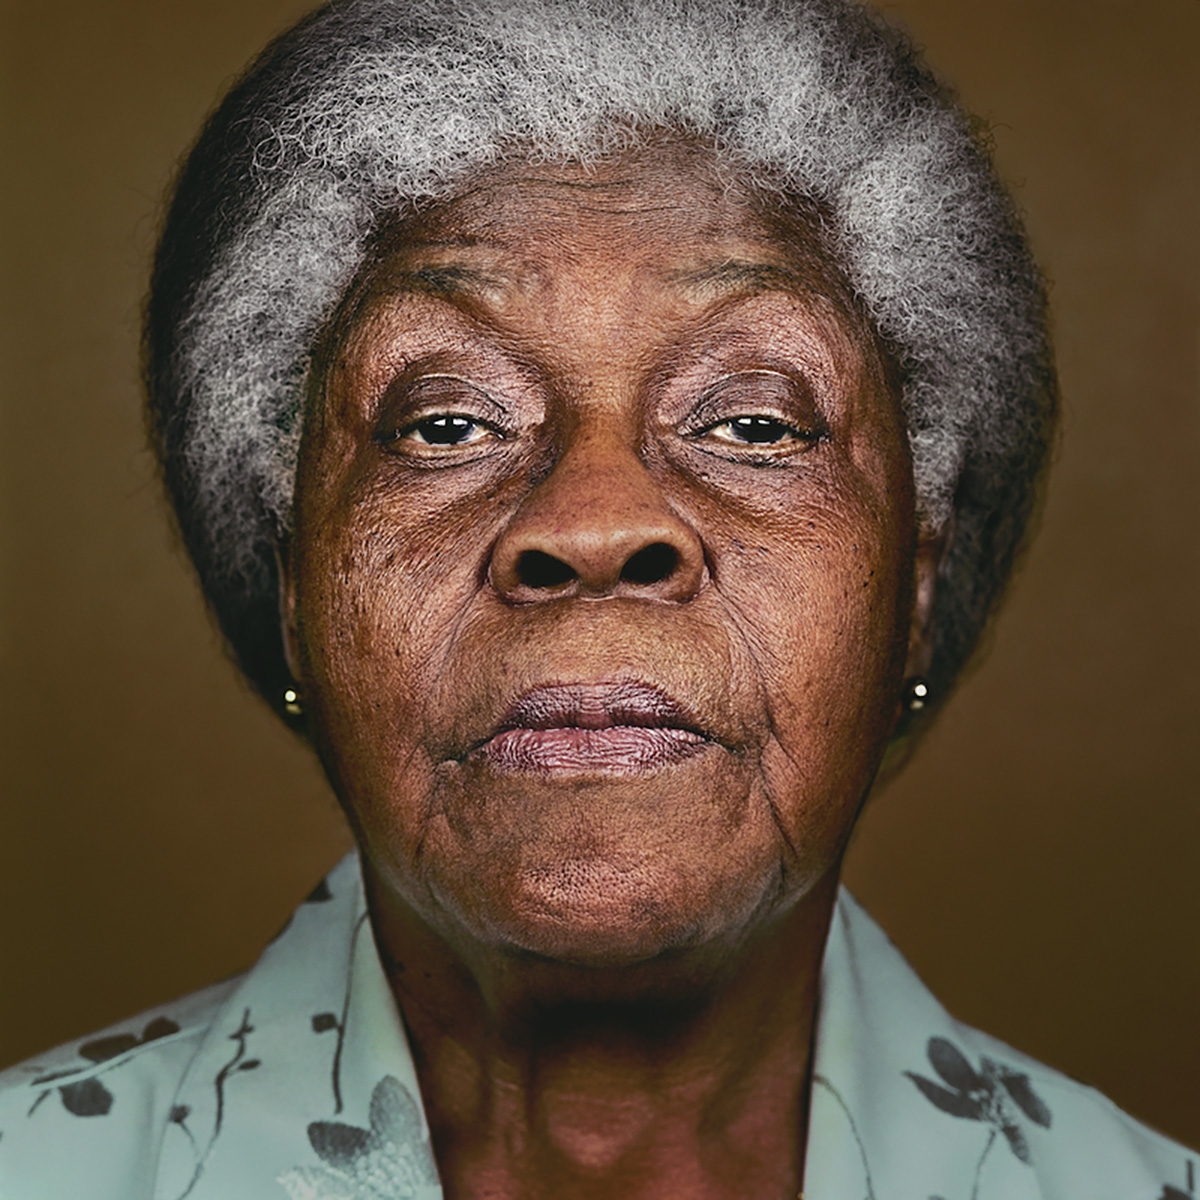 Portraits of our mothers